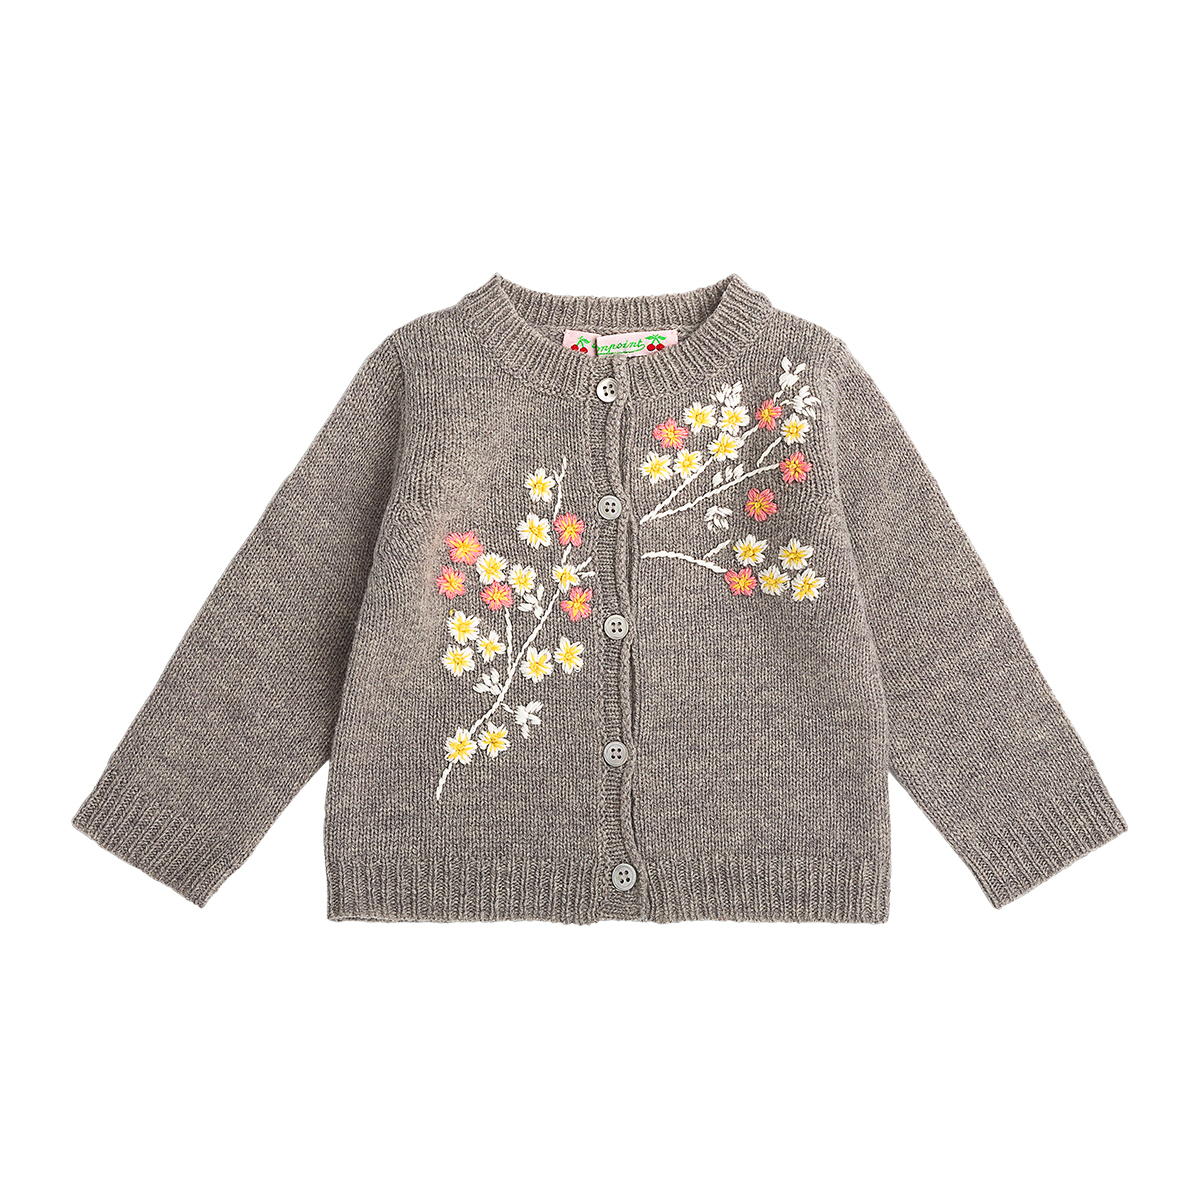 Bonpoint Boderie Cardigan in Gris Chine